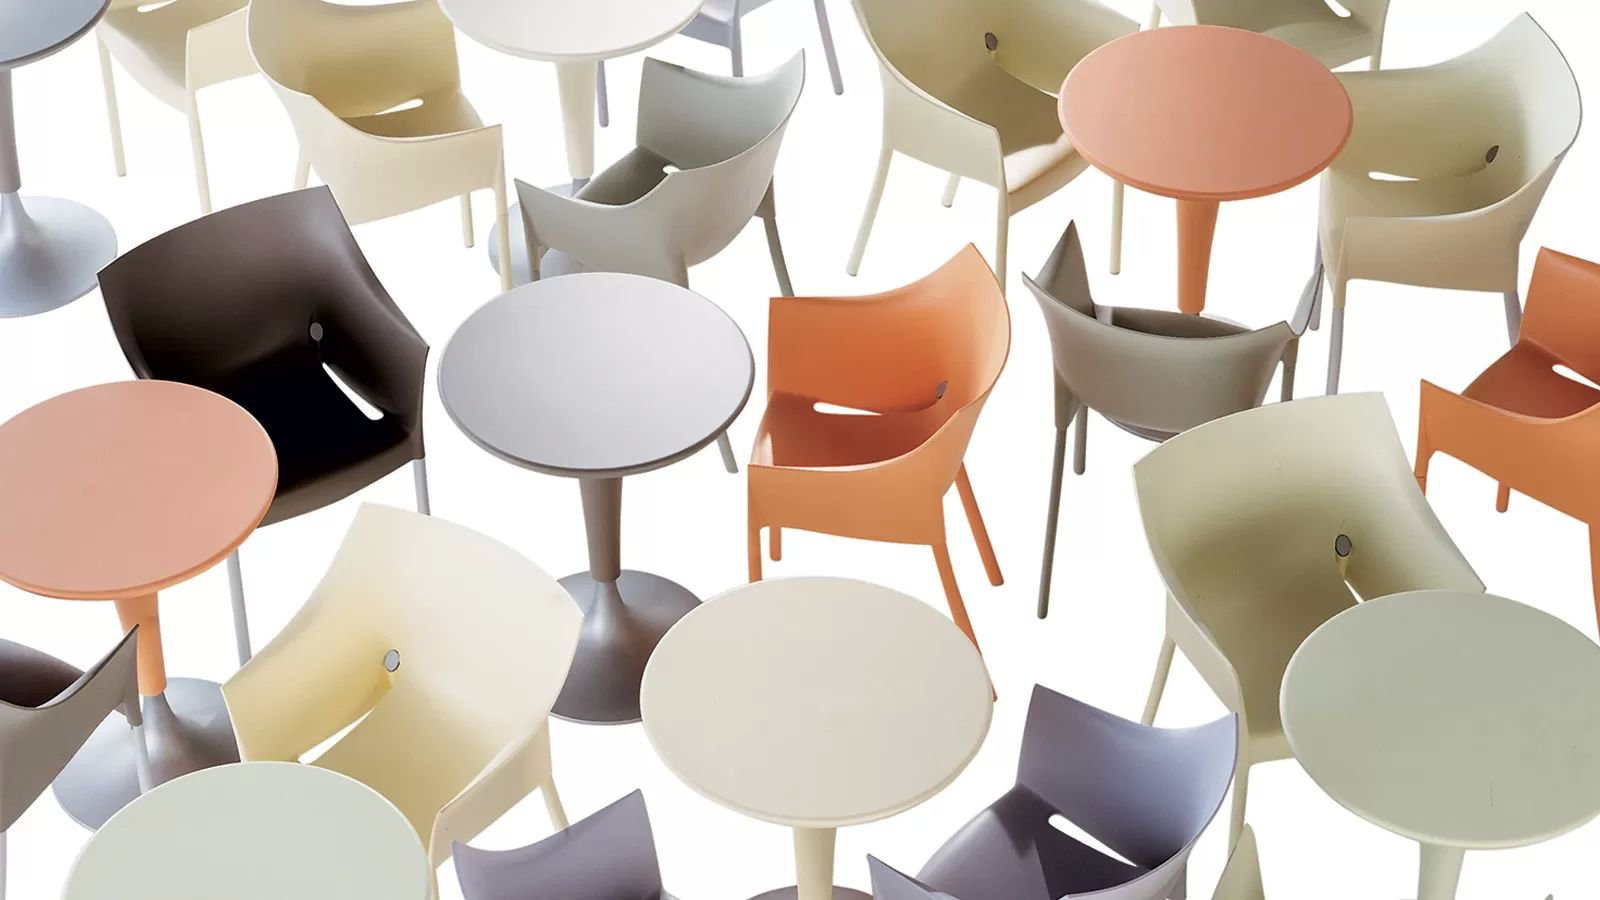 Dr Na Table dining from Kartell, designed by Philippe Starck